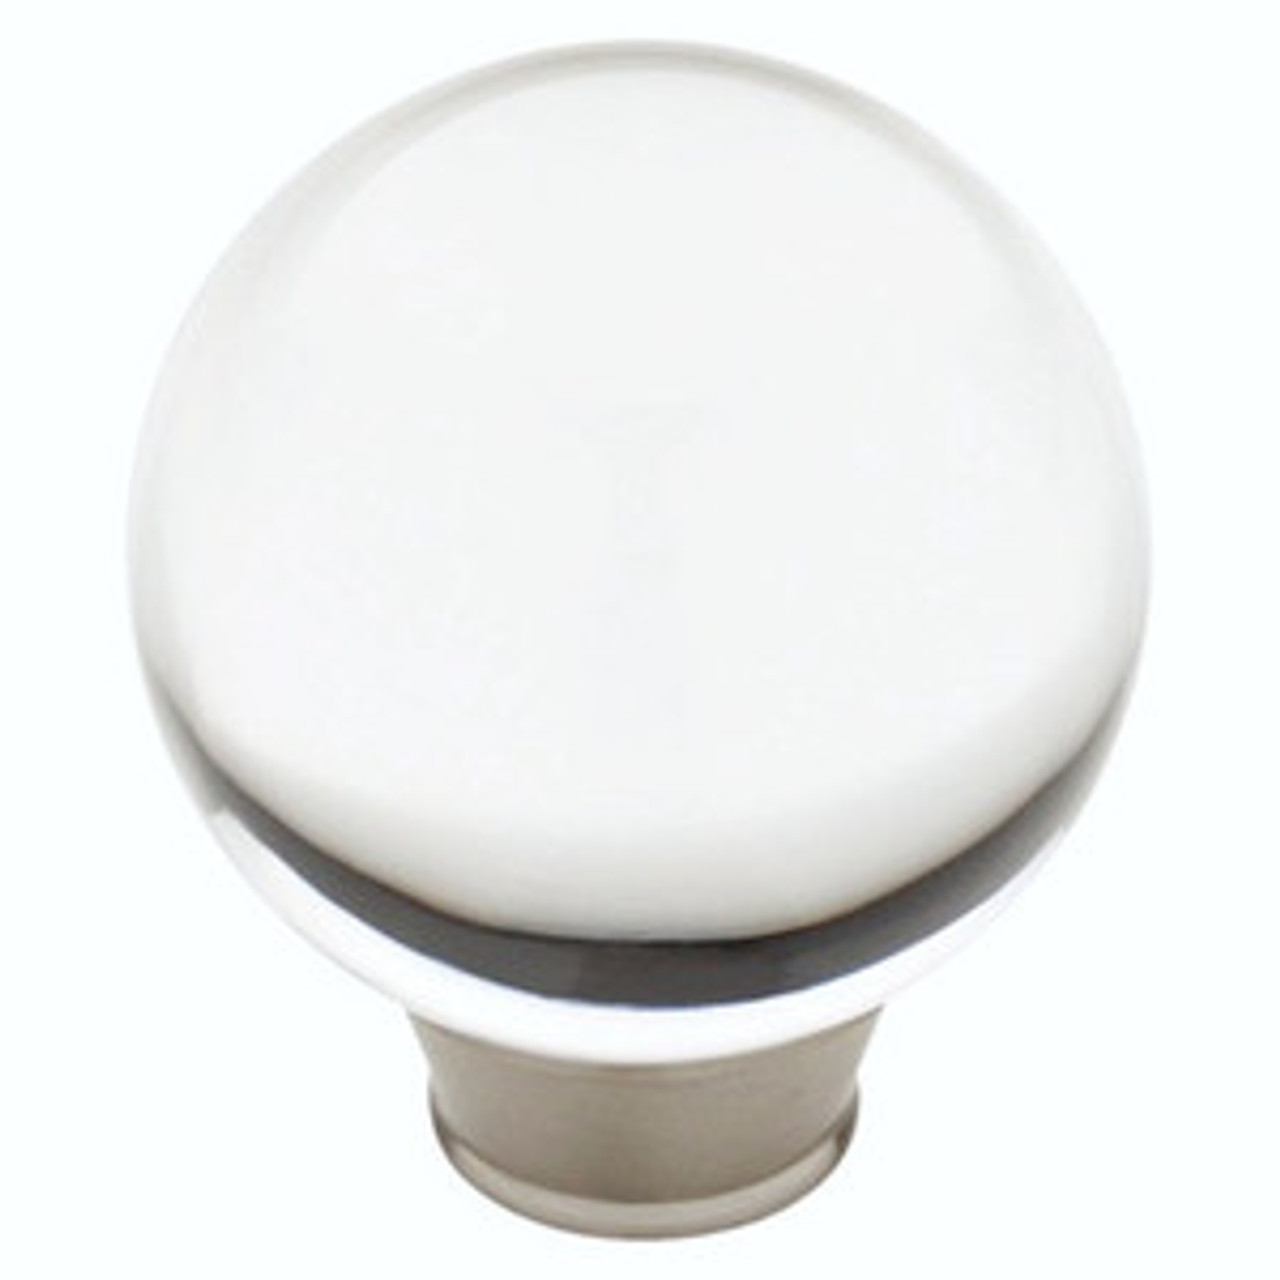 "085-03-0111 1 3/86"" Clear Acrylic & Satin Nickel Cabinet Drawer Knob 4 Pack"